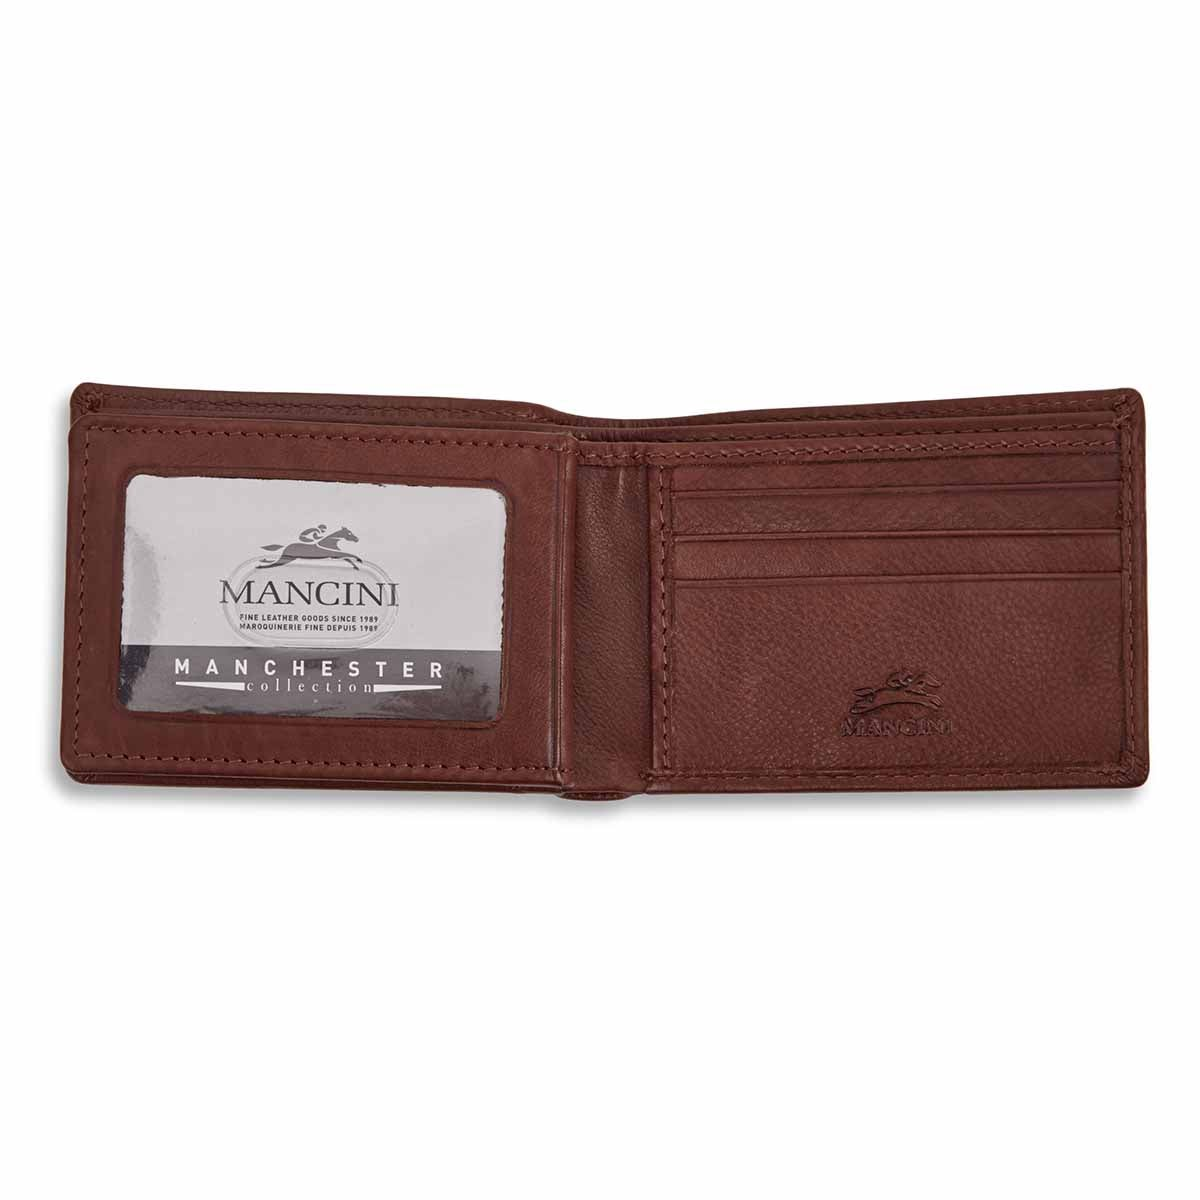 Mns center wing cgnc RFID secure wallet